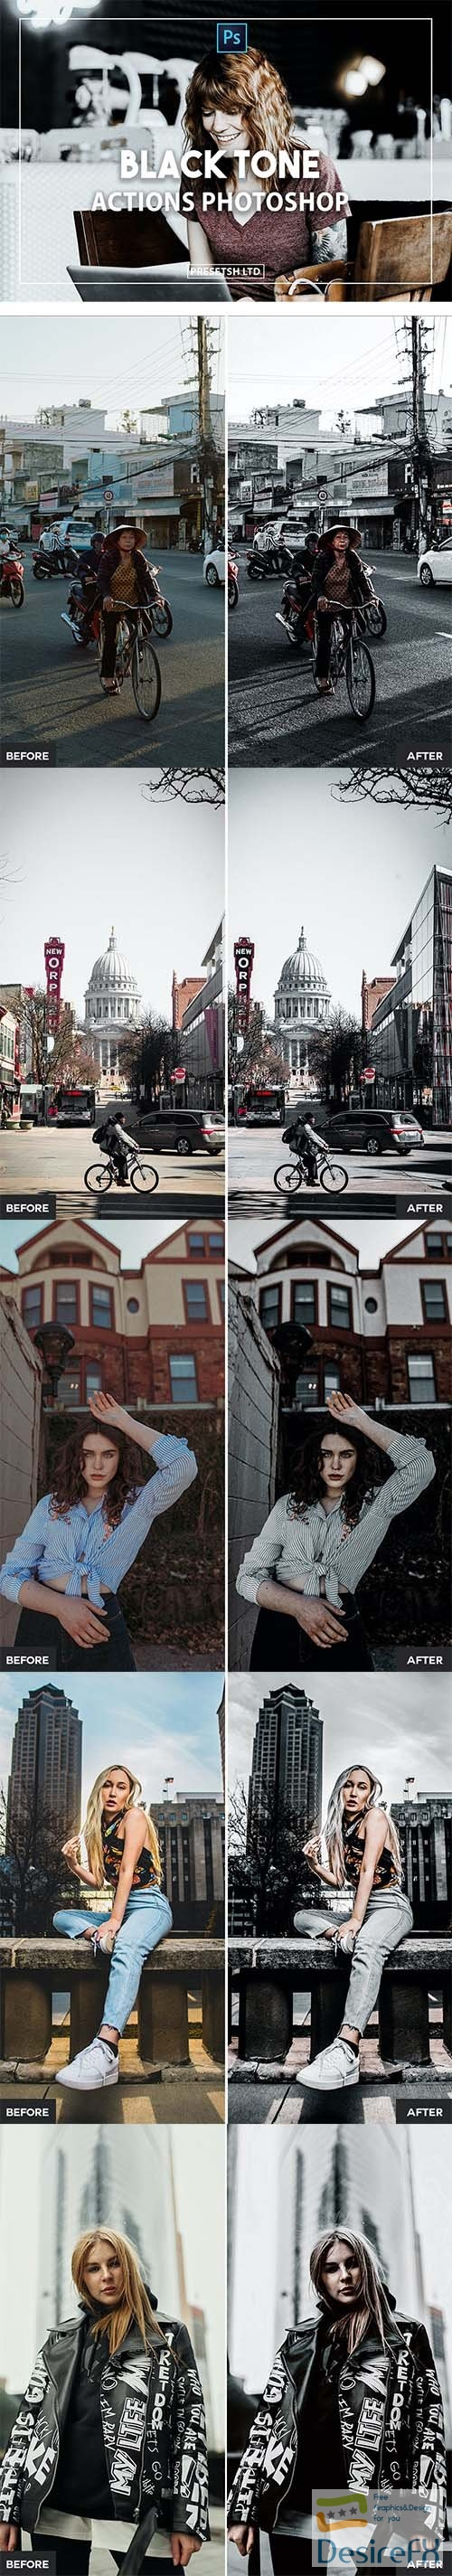 Black Tone Photoshop Actions